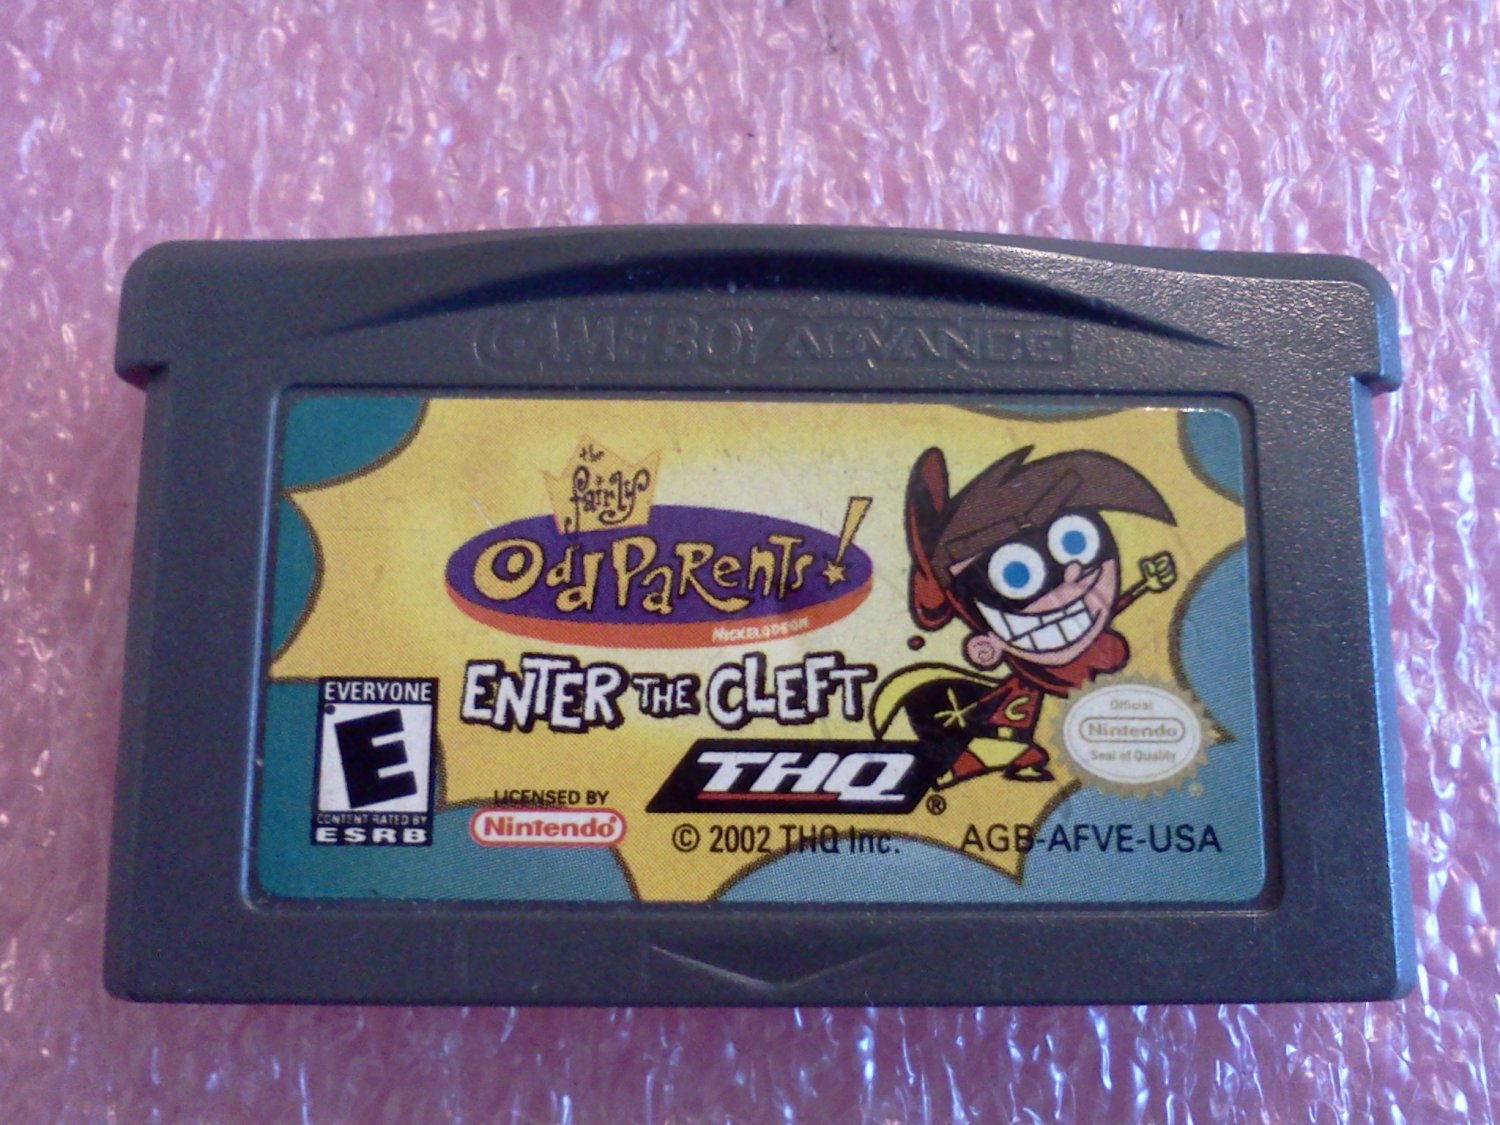 Fairly OddParents: Enter the Cleft (Nintendo Game Boy Advance, 2002)